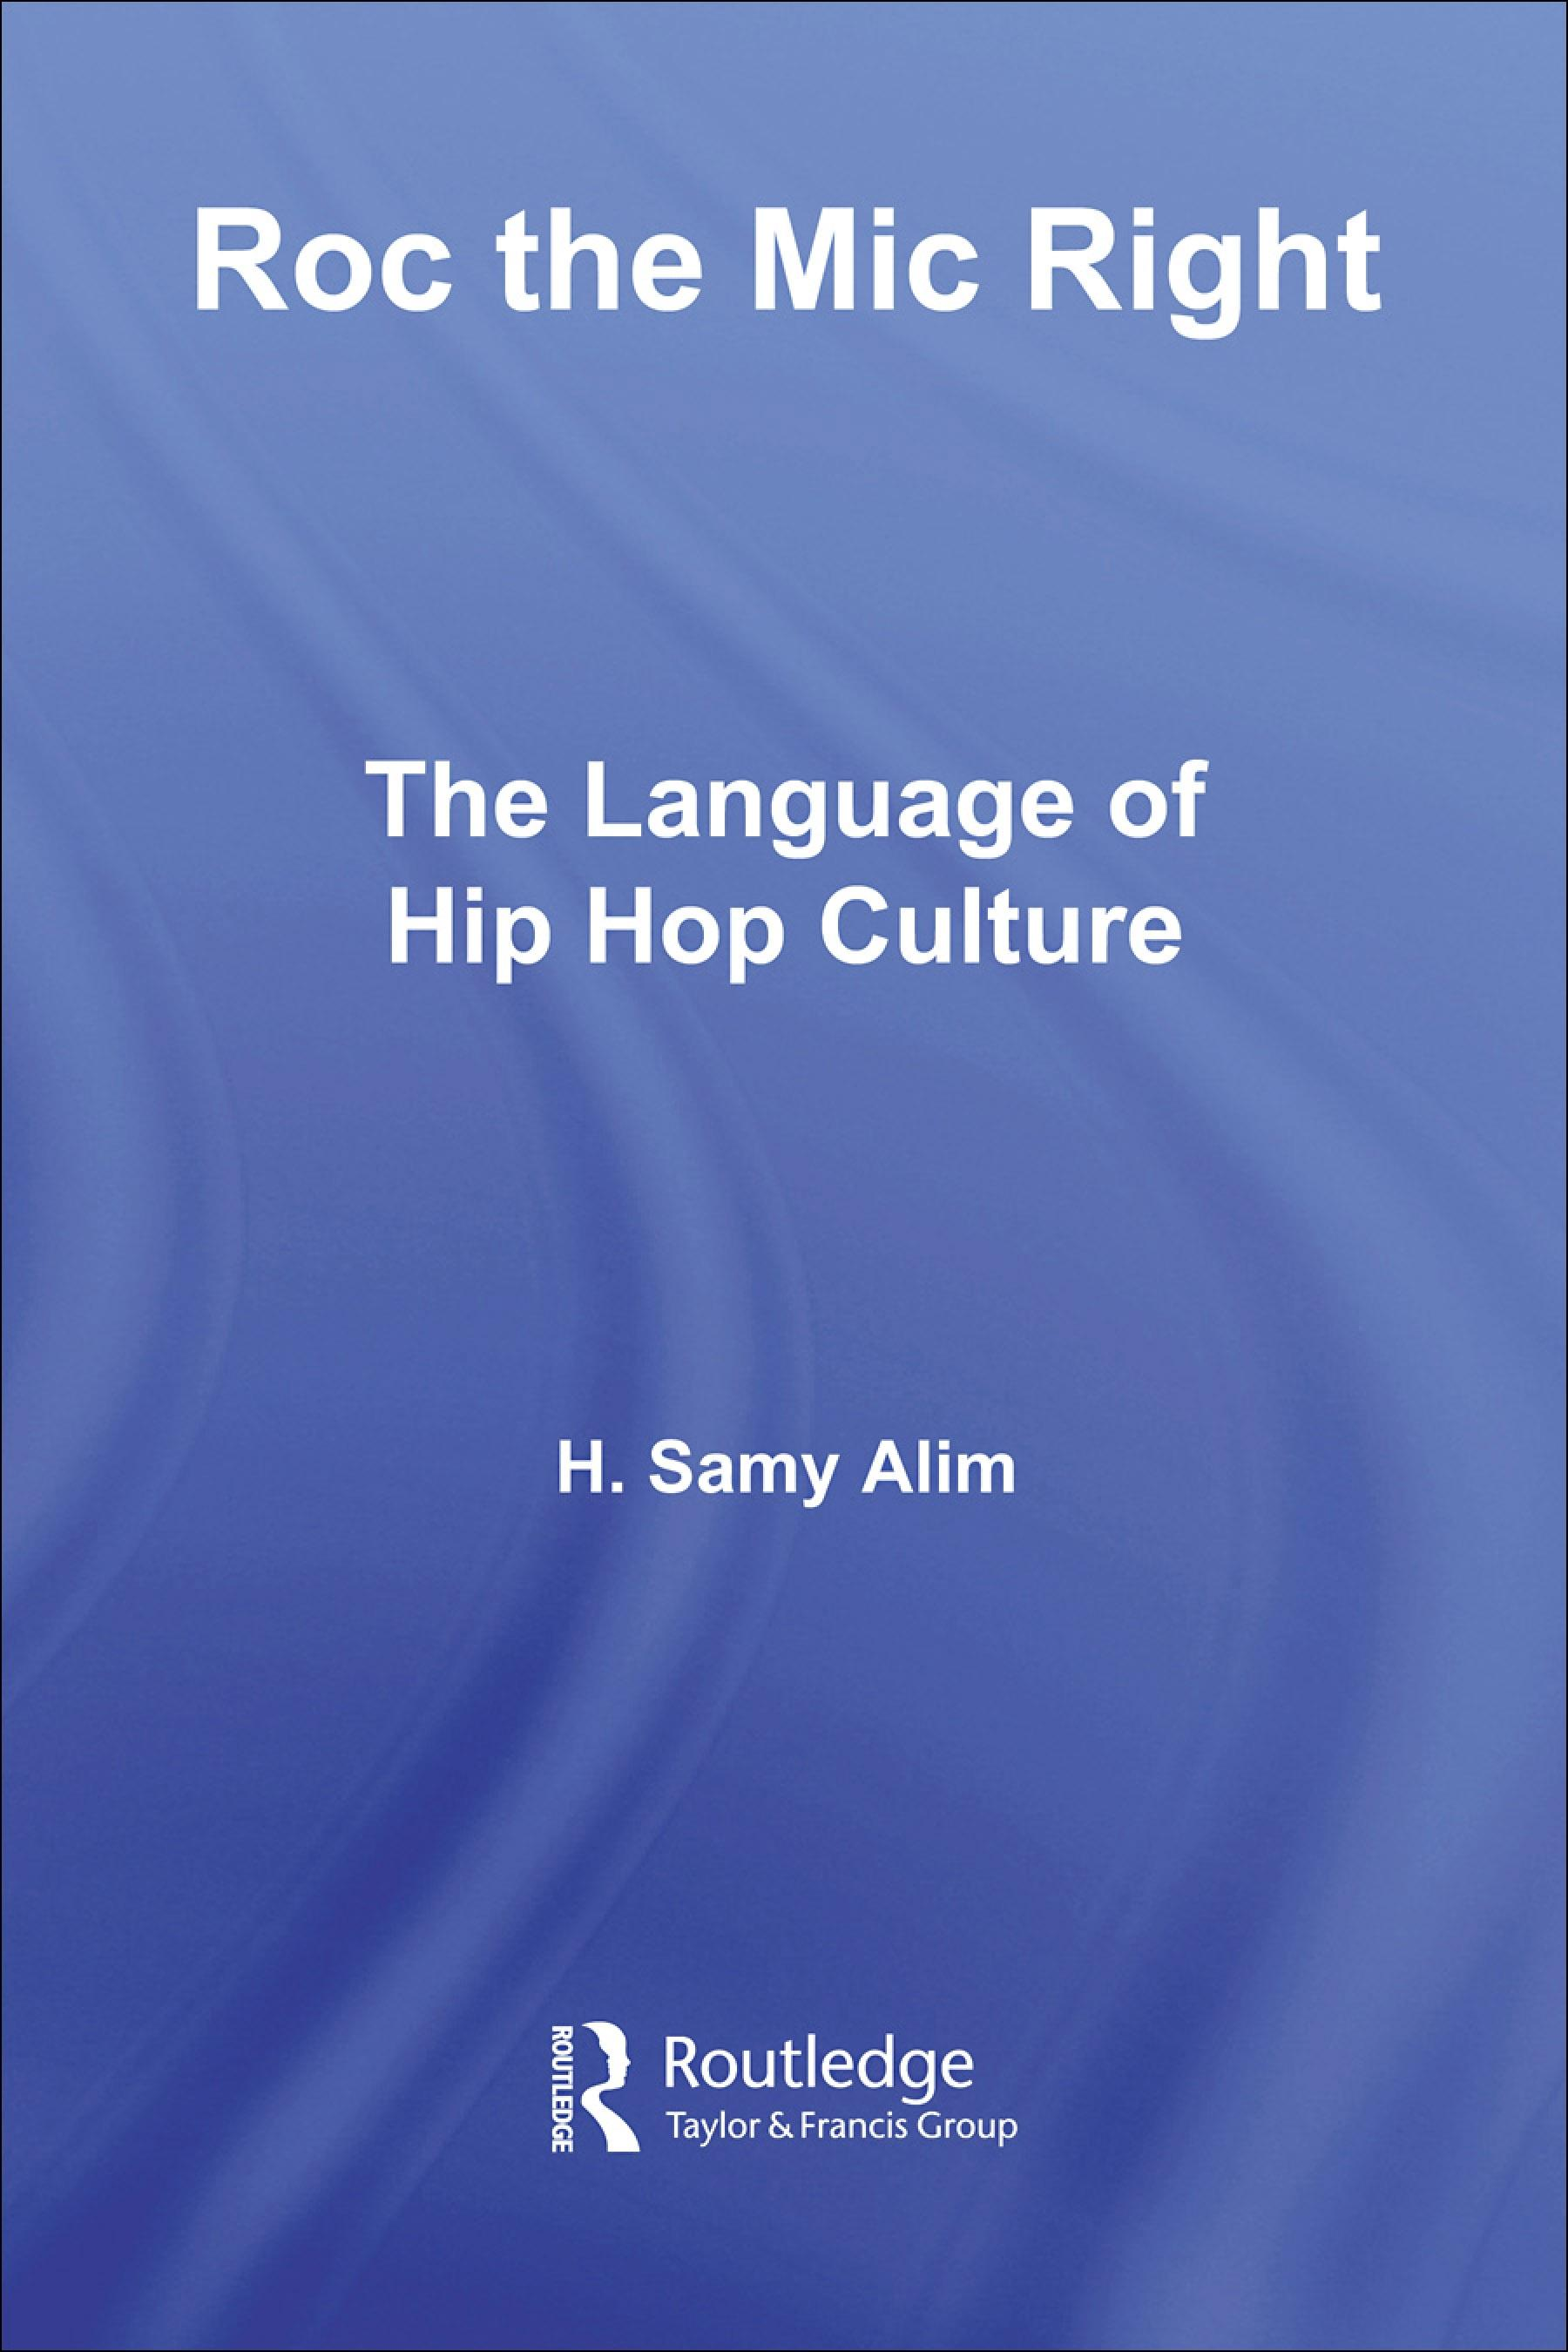 Roc the Mic Right: The Language of Hip Hop Culture H. Samy Alim